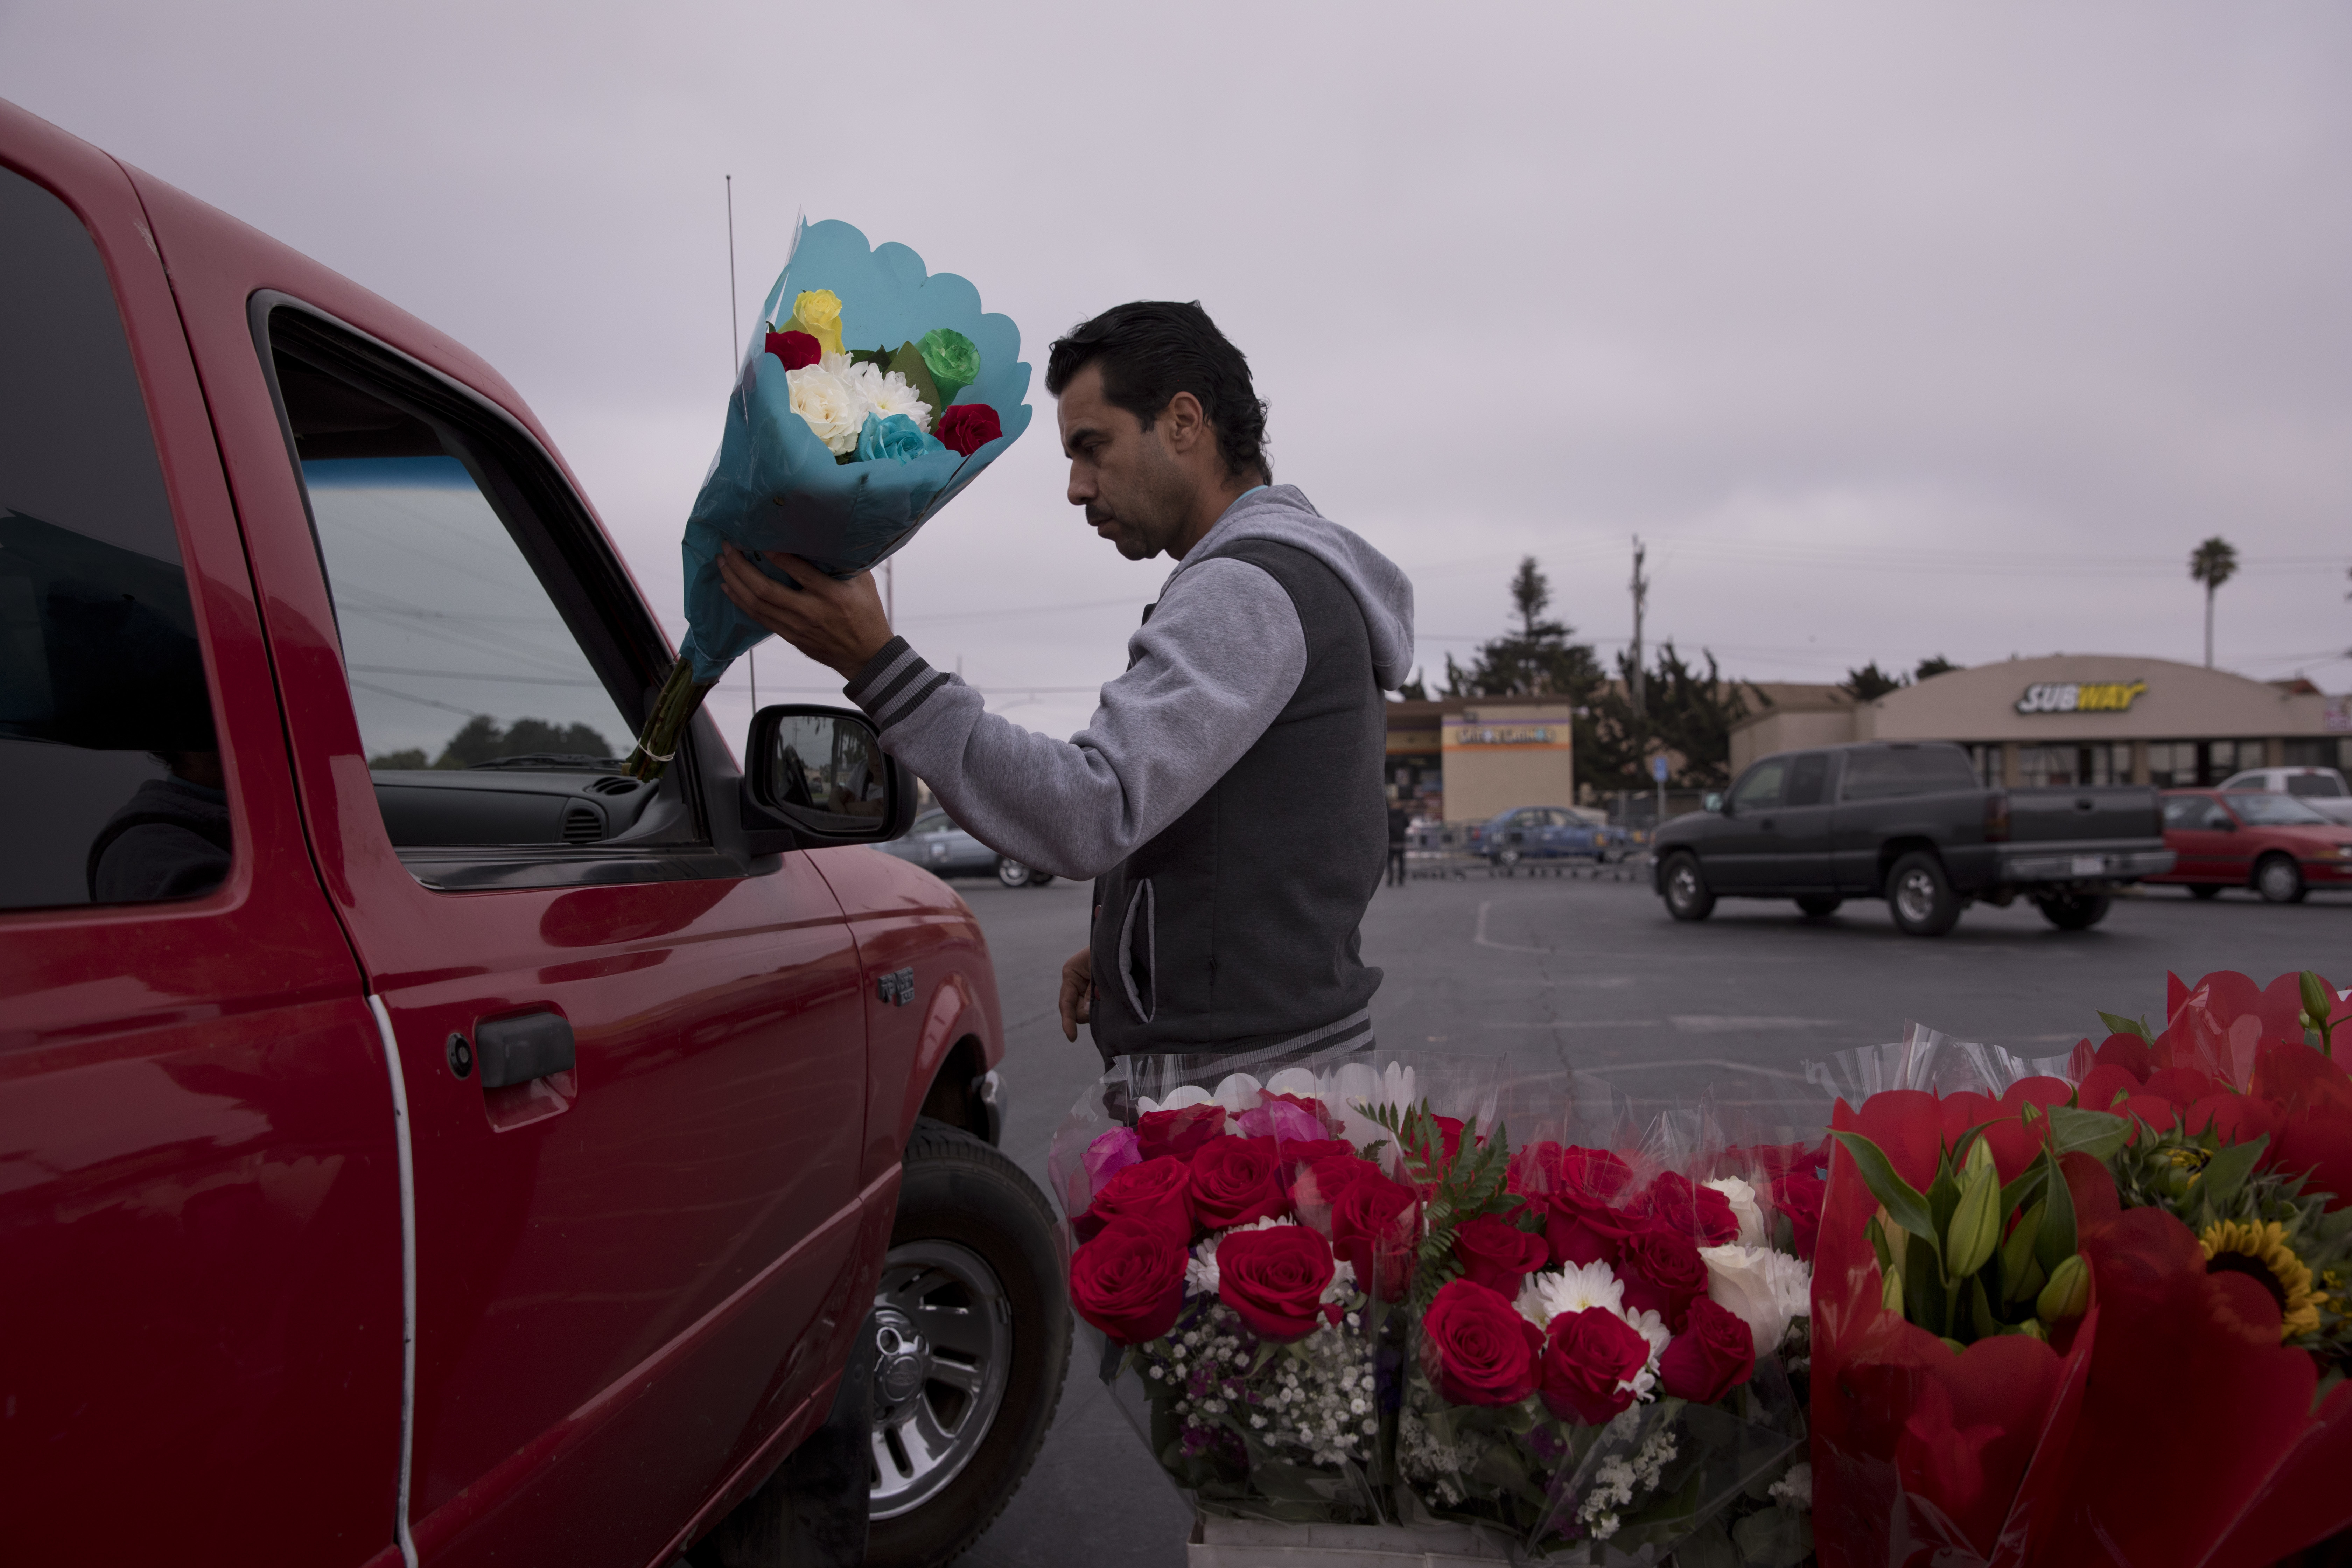 In this Tuesday, Sept. 4, 2018, photo, Jose Contrares, who shares an apartment with seven people, sells flowers in the parking lot of a strip mall in Salinas, Calif. Few cities exemplify California's housing crisis better than Salinas, an hour's drive from Silicon Valley and surrounded by farm fields. It's one of America's most unaffordable places to live, and many residents believe politicians lack a grip on the reality of the region's housing crisis. (AP Photo/Jae C. Hong)